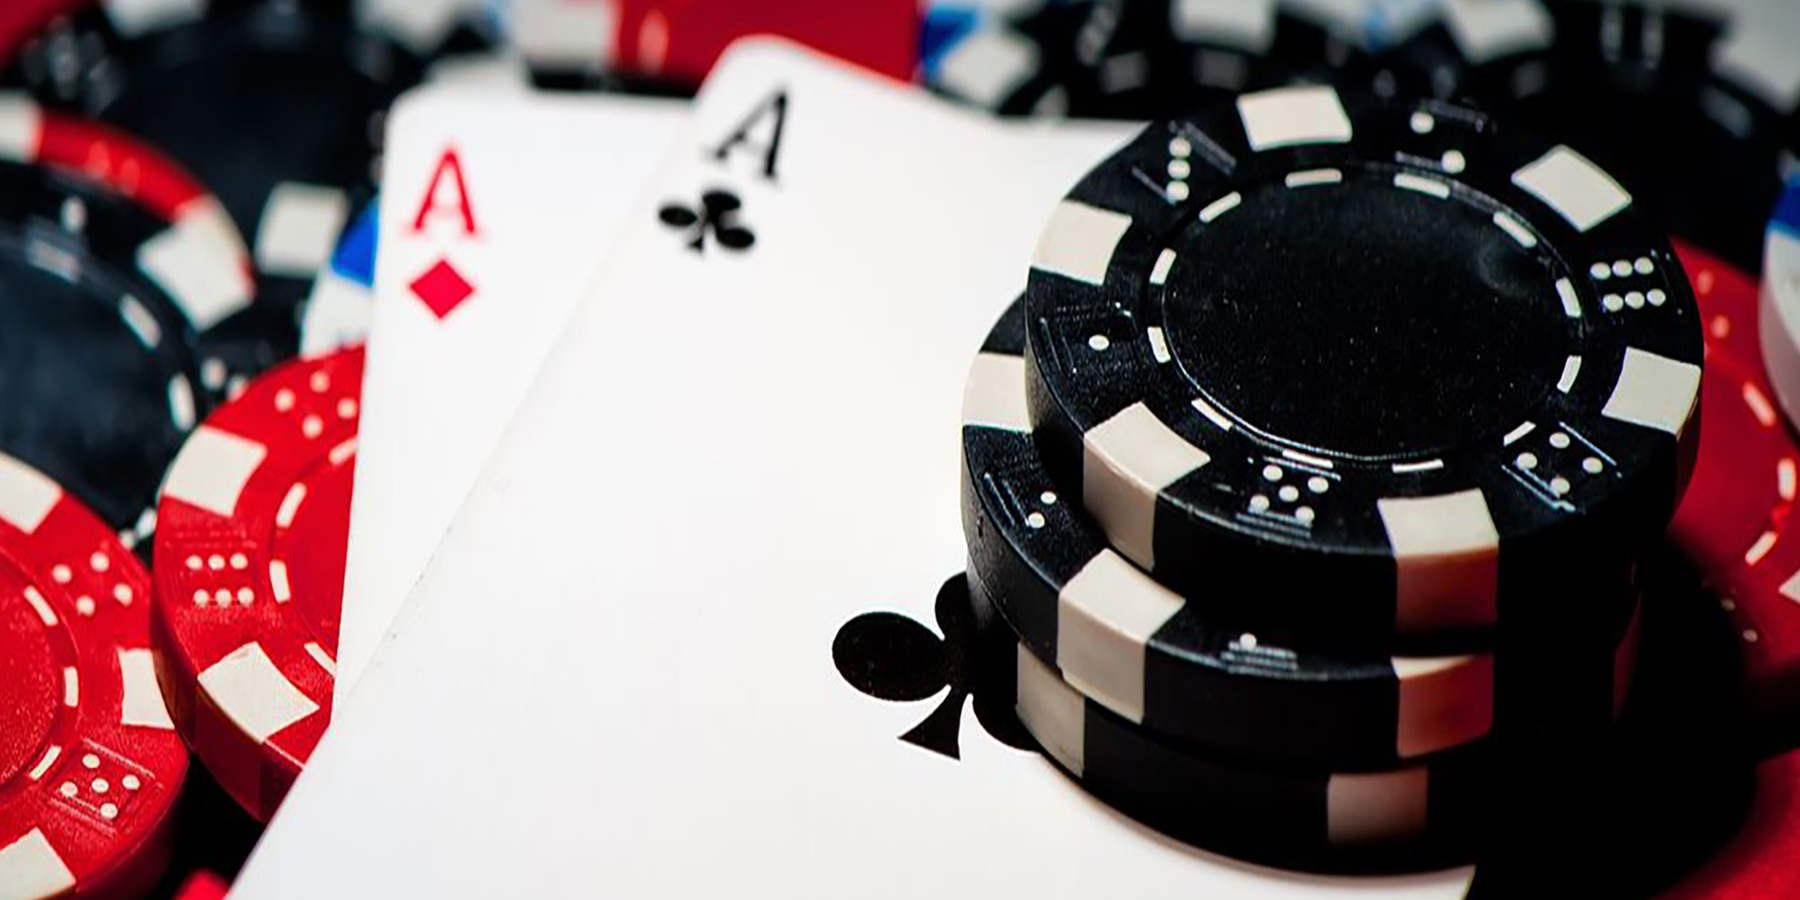 The growth of online casino